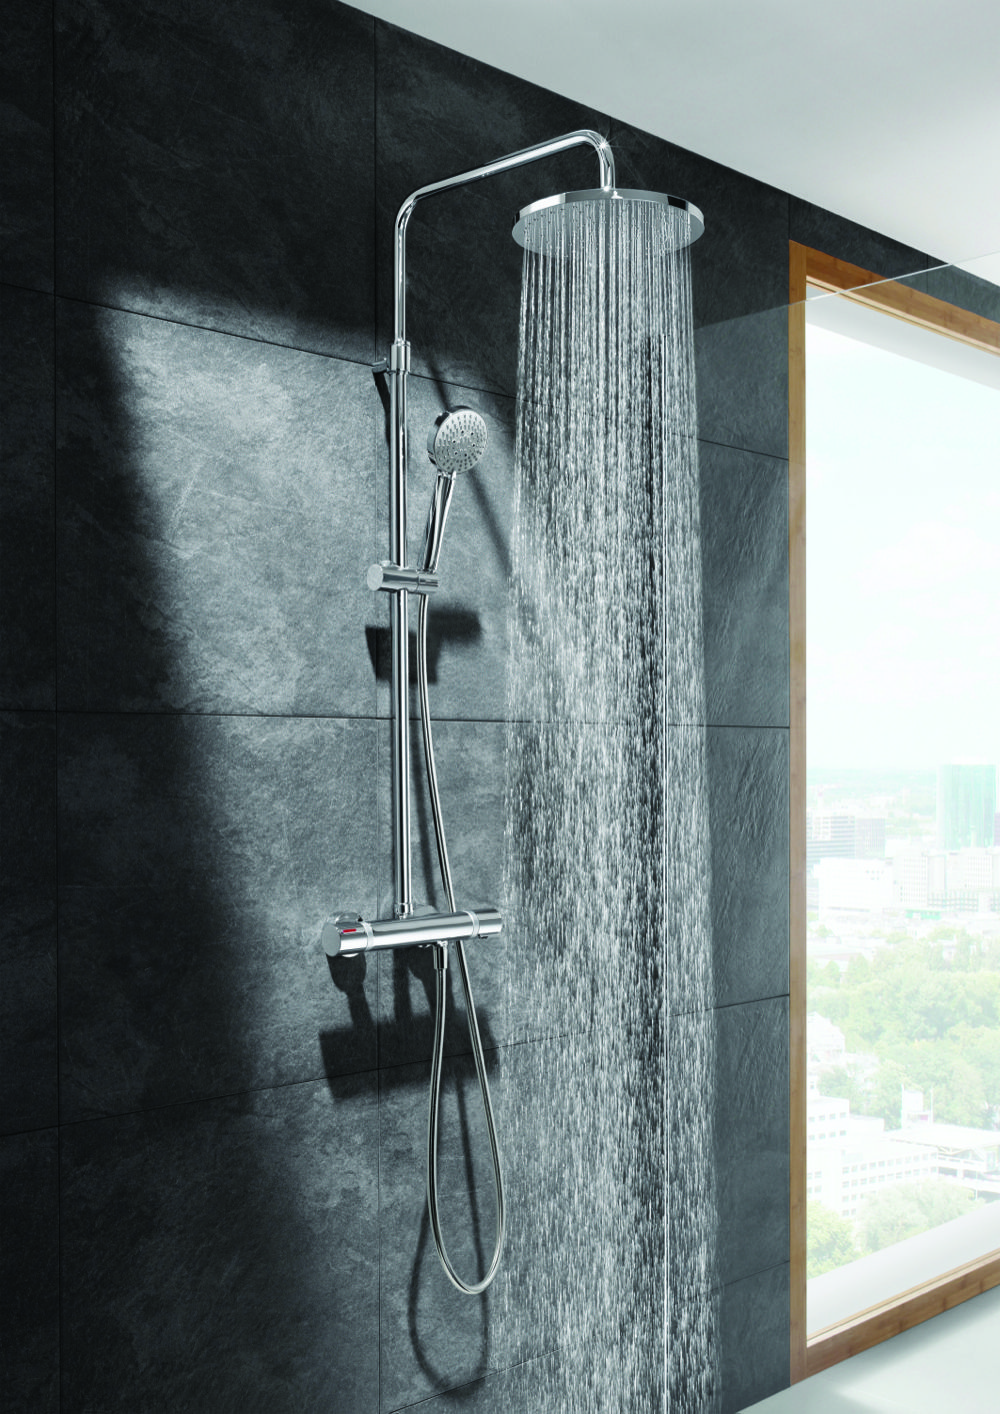 The Even-T shower column from Roca combines a Rainsense shower head, T-1000 thermostatic mixer and multifunction hand shower in one unit. www.uk-roca.co.uk www.designerkbmag.co.uk